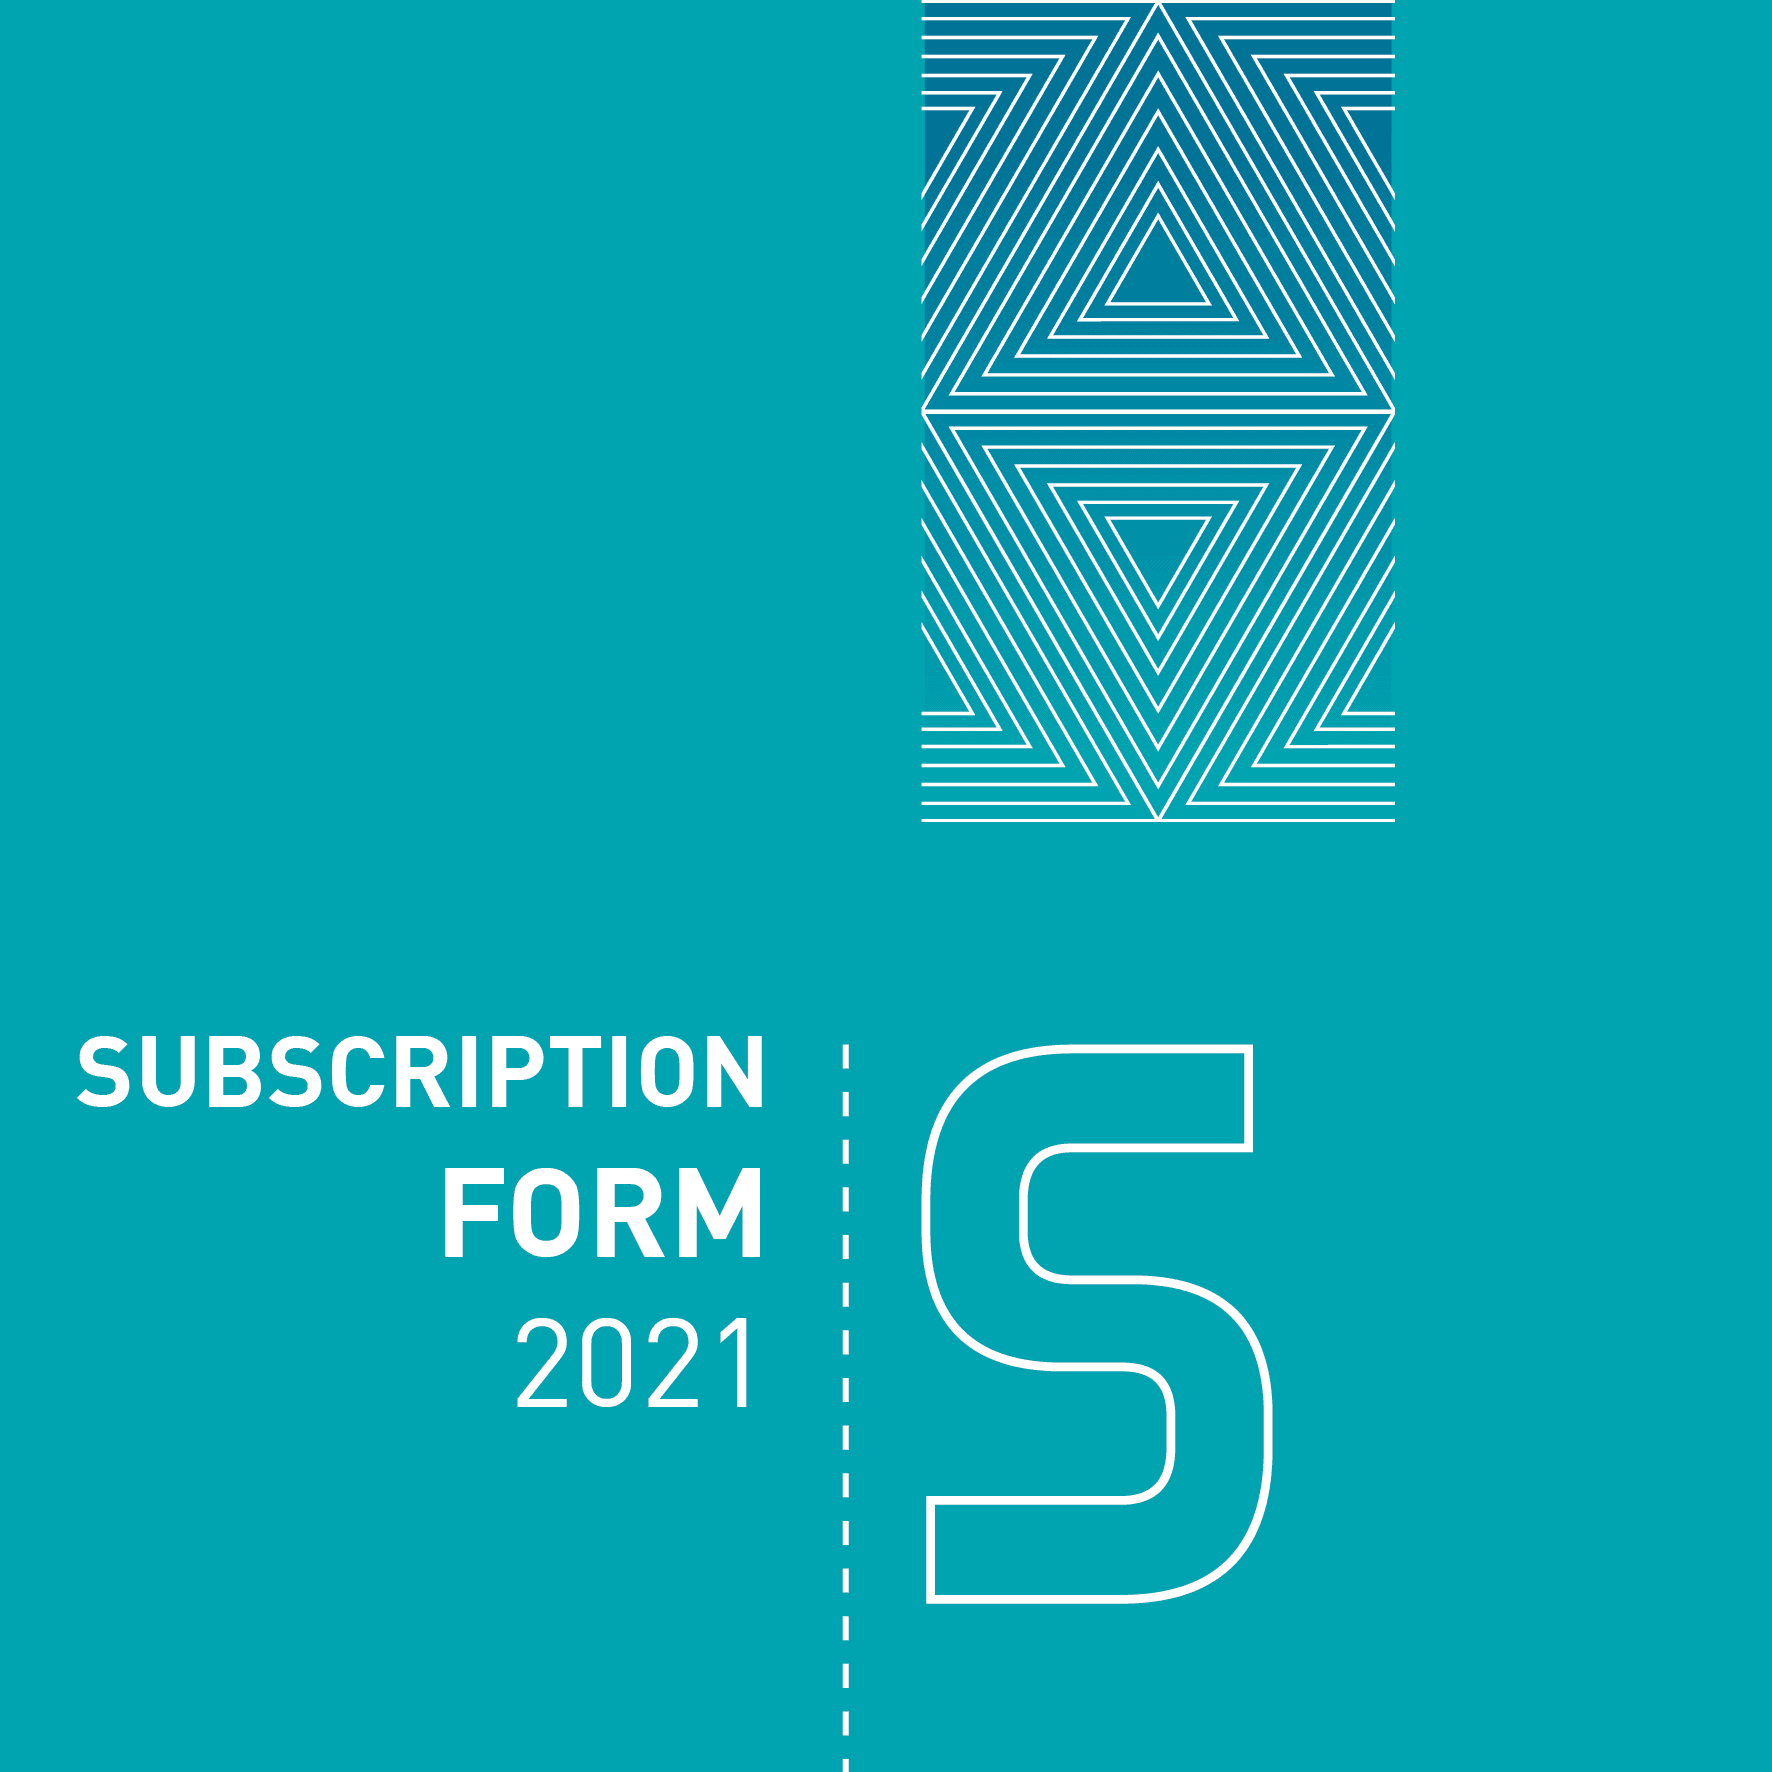 2021 Subscription Form